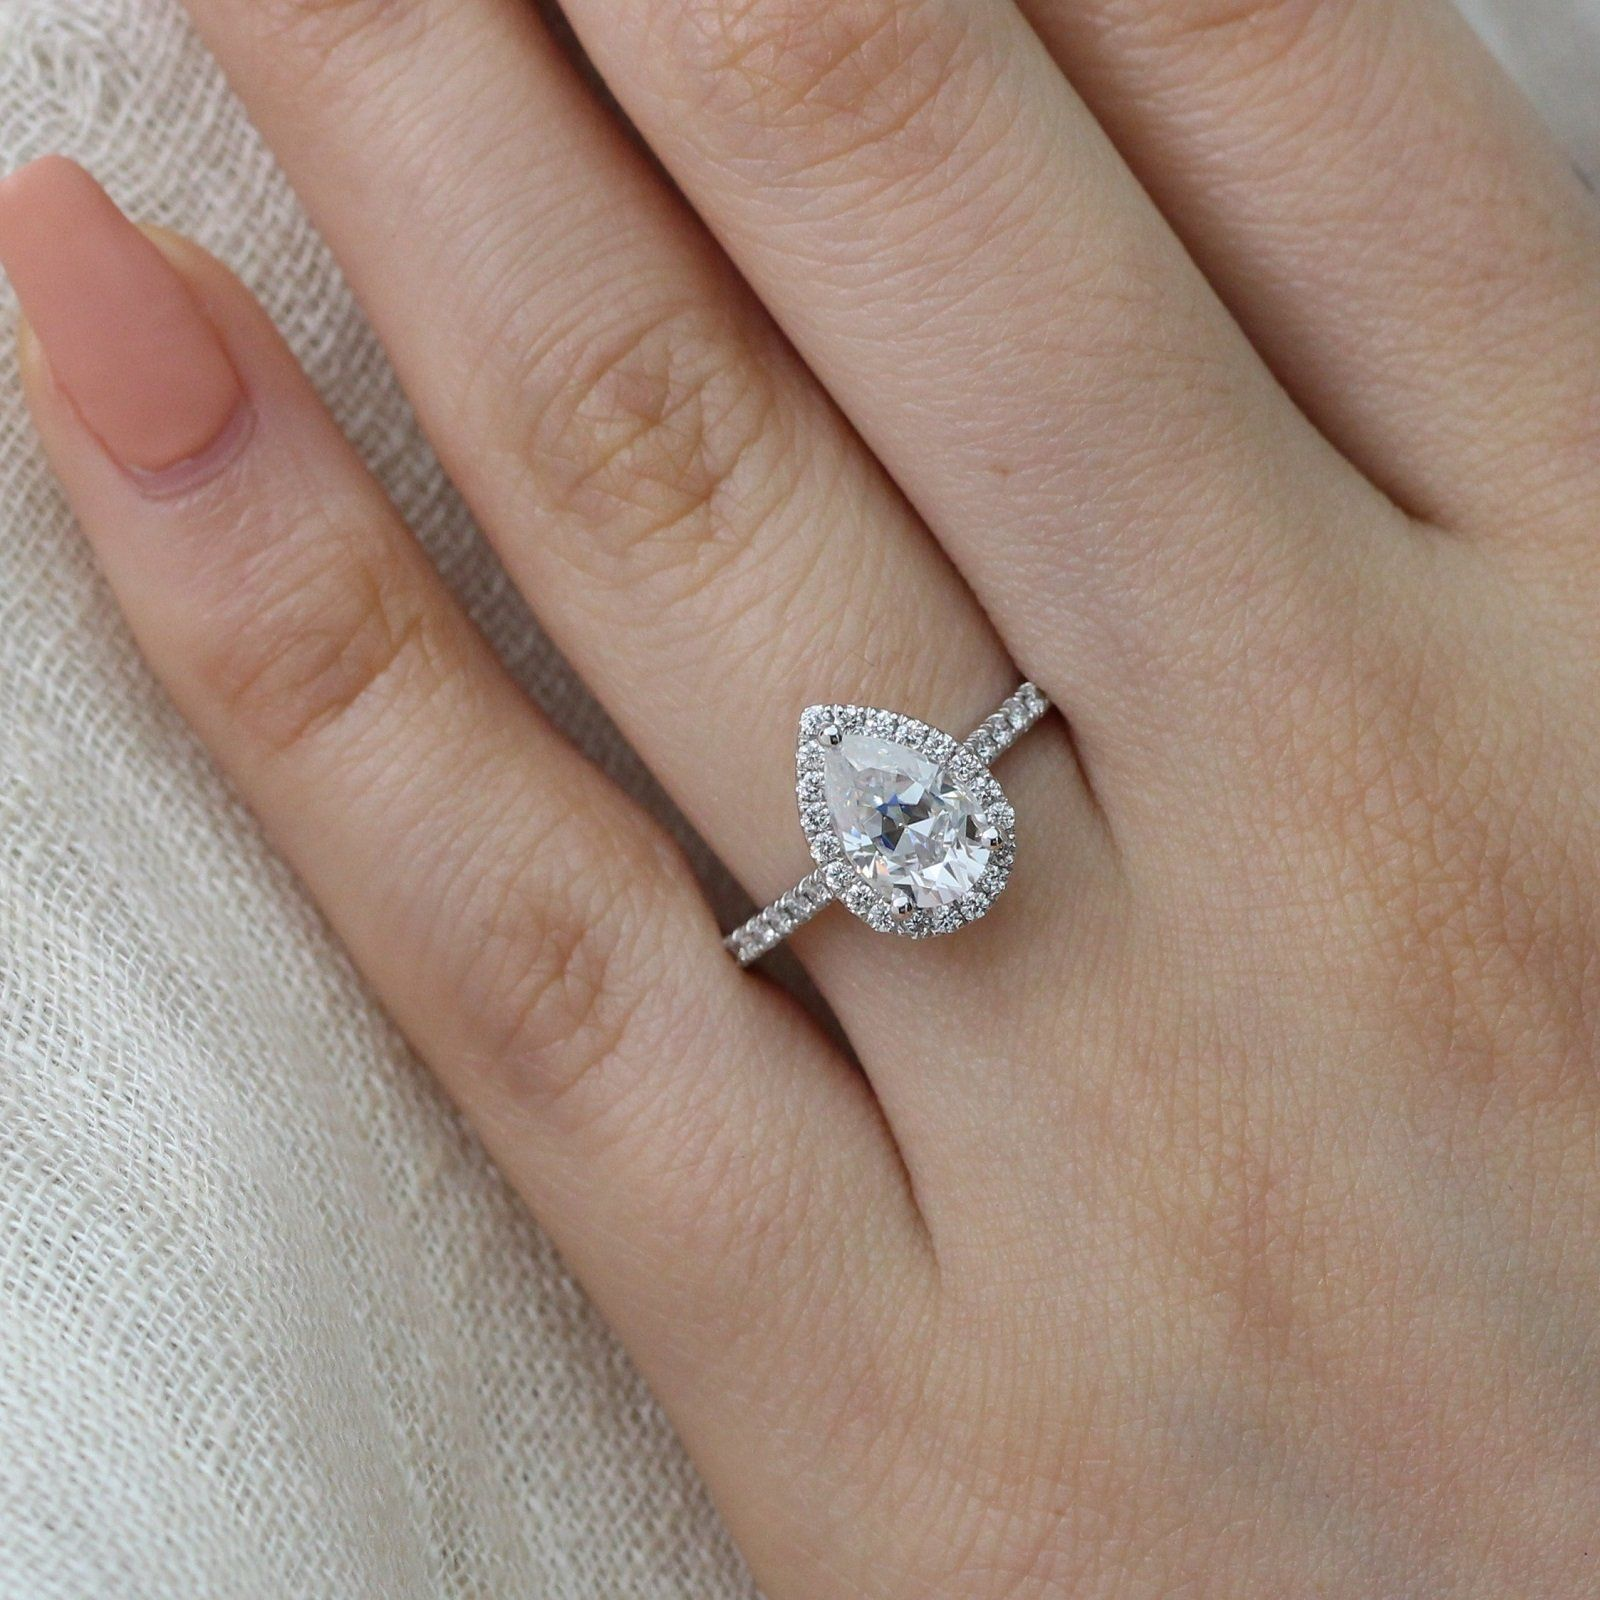 Luna halo ring in pave band w pear forever one moissanite and